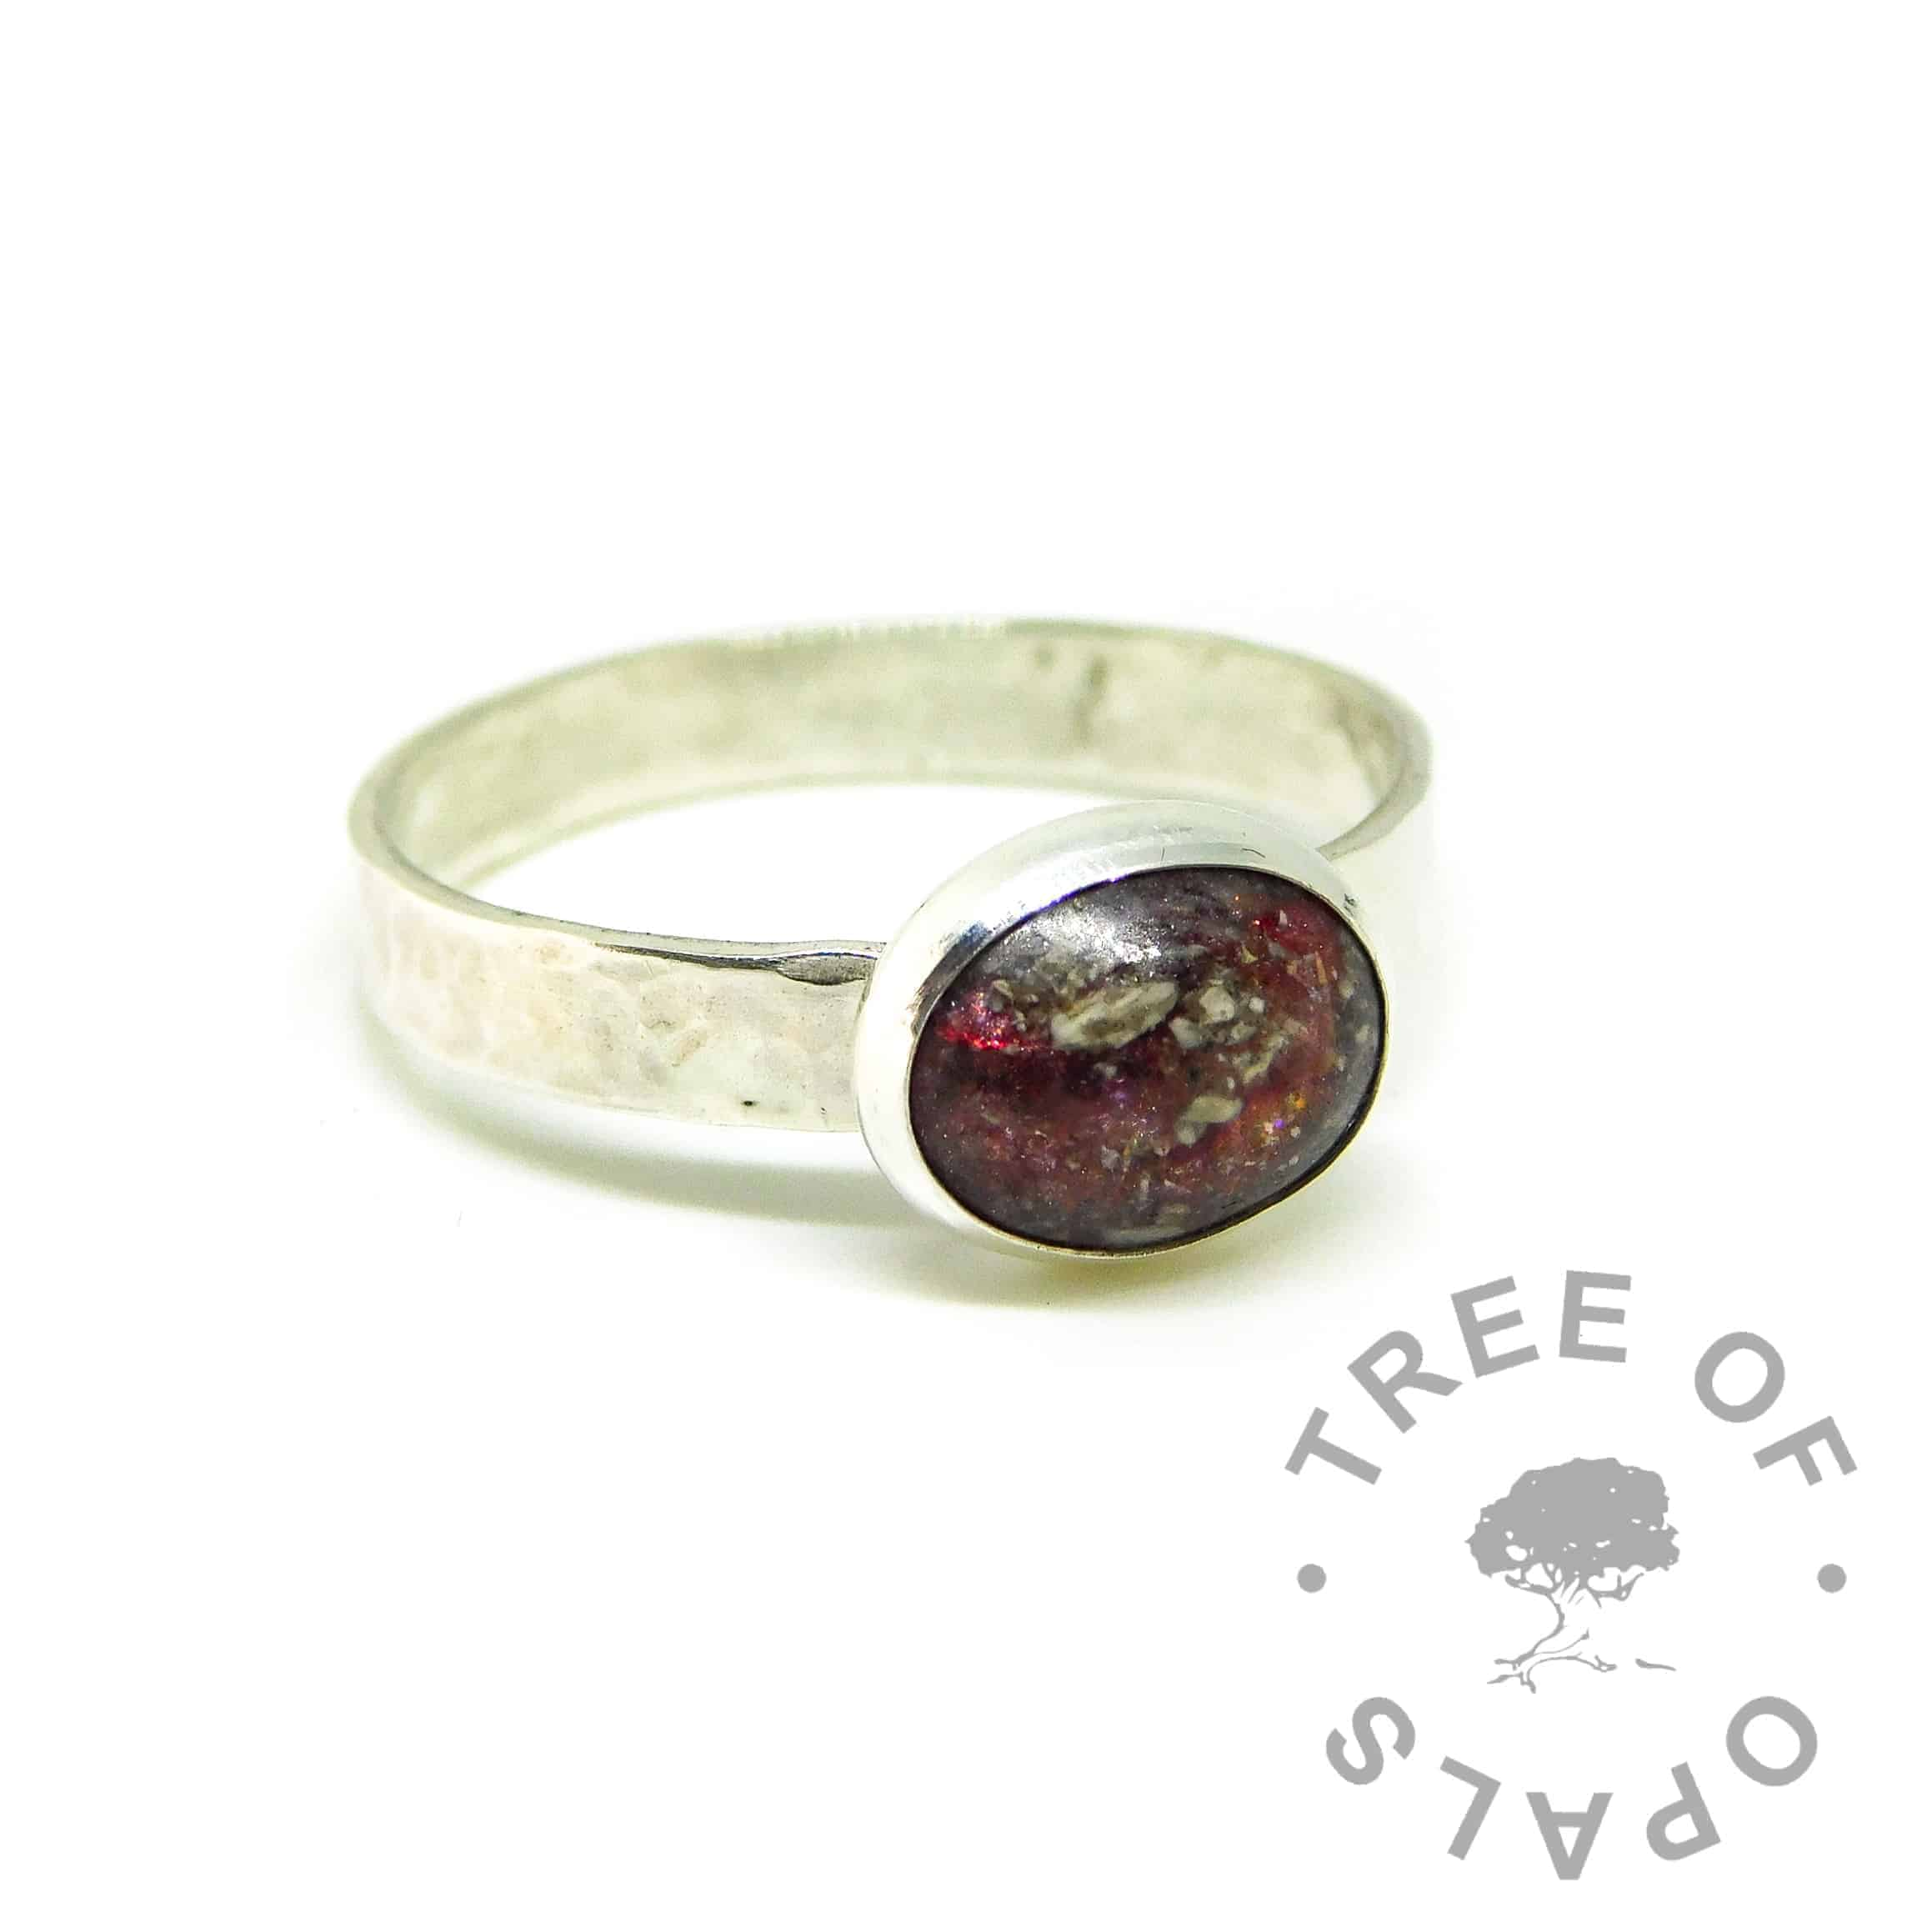 red ashes jewellery ring. Textured 3mm band with dragon's blood red resin sparkle mix